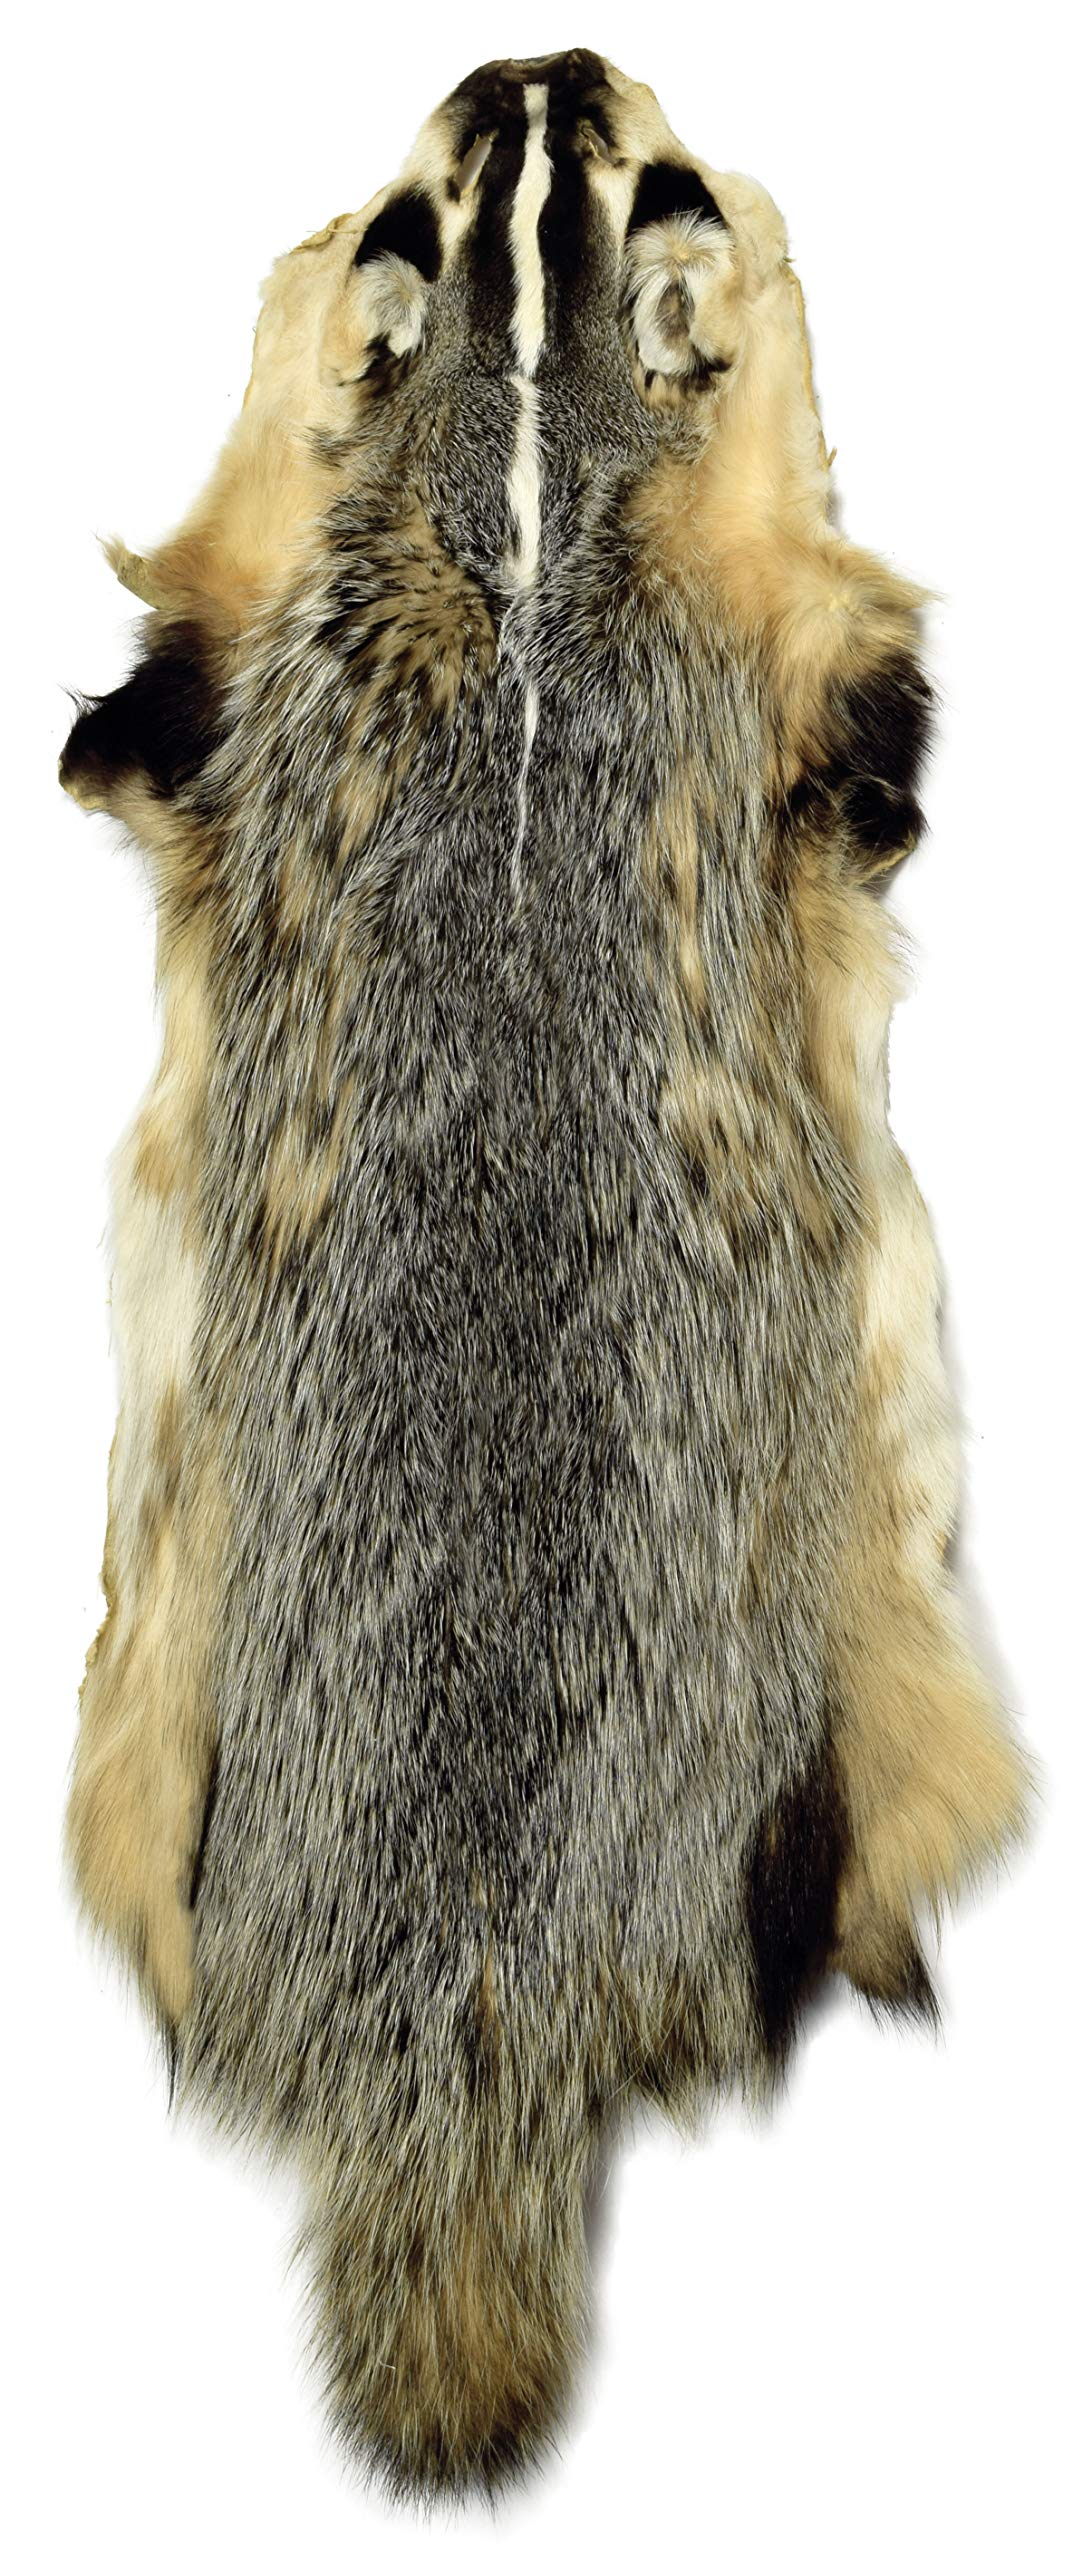 Professionally Tanned Badger Fur Pelt with Tail - 1 Pelt by AuSable Fur